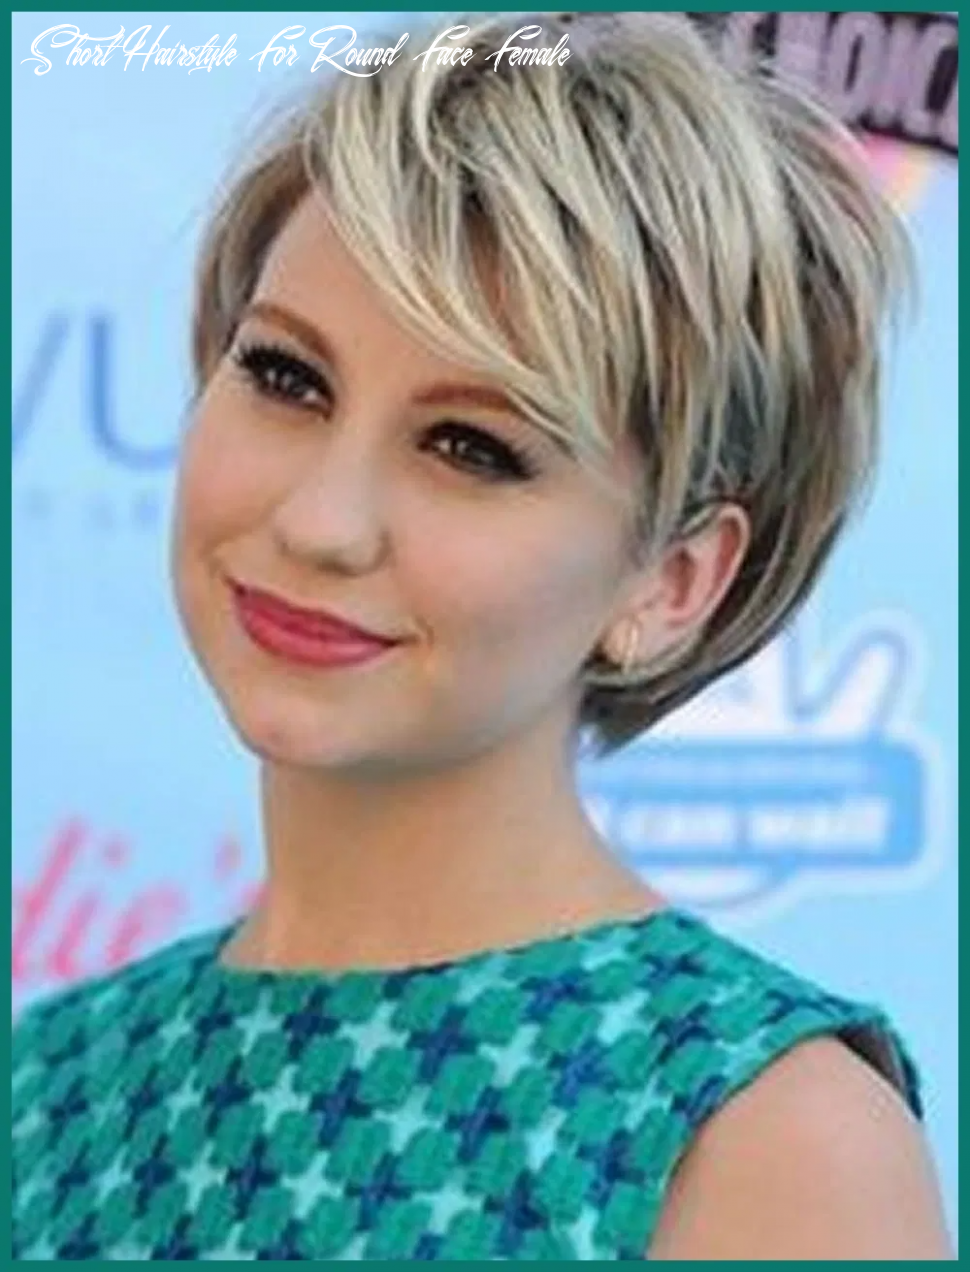 Pin on ✽ hair style ✽ short hairstyle for round face female